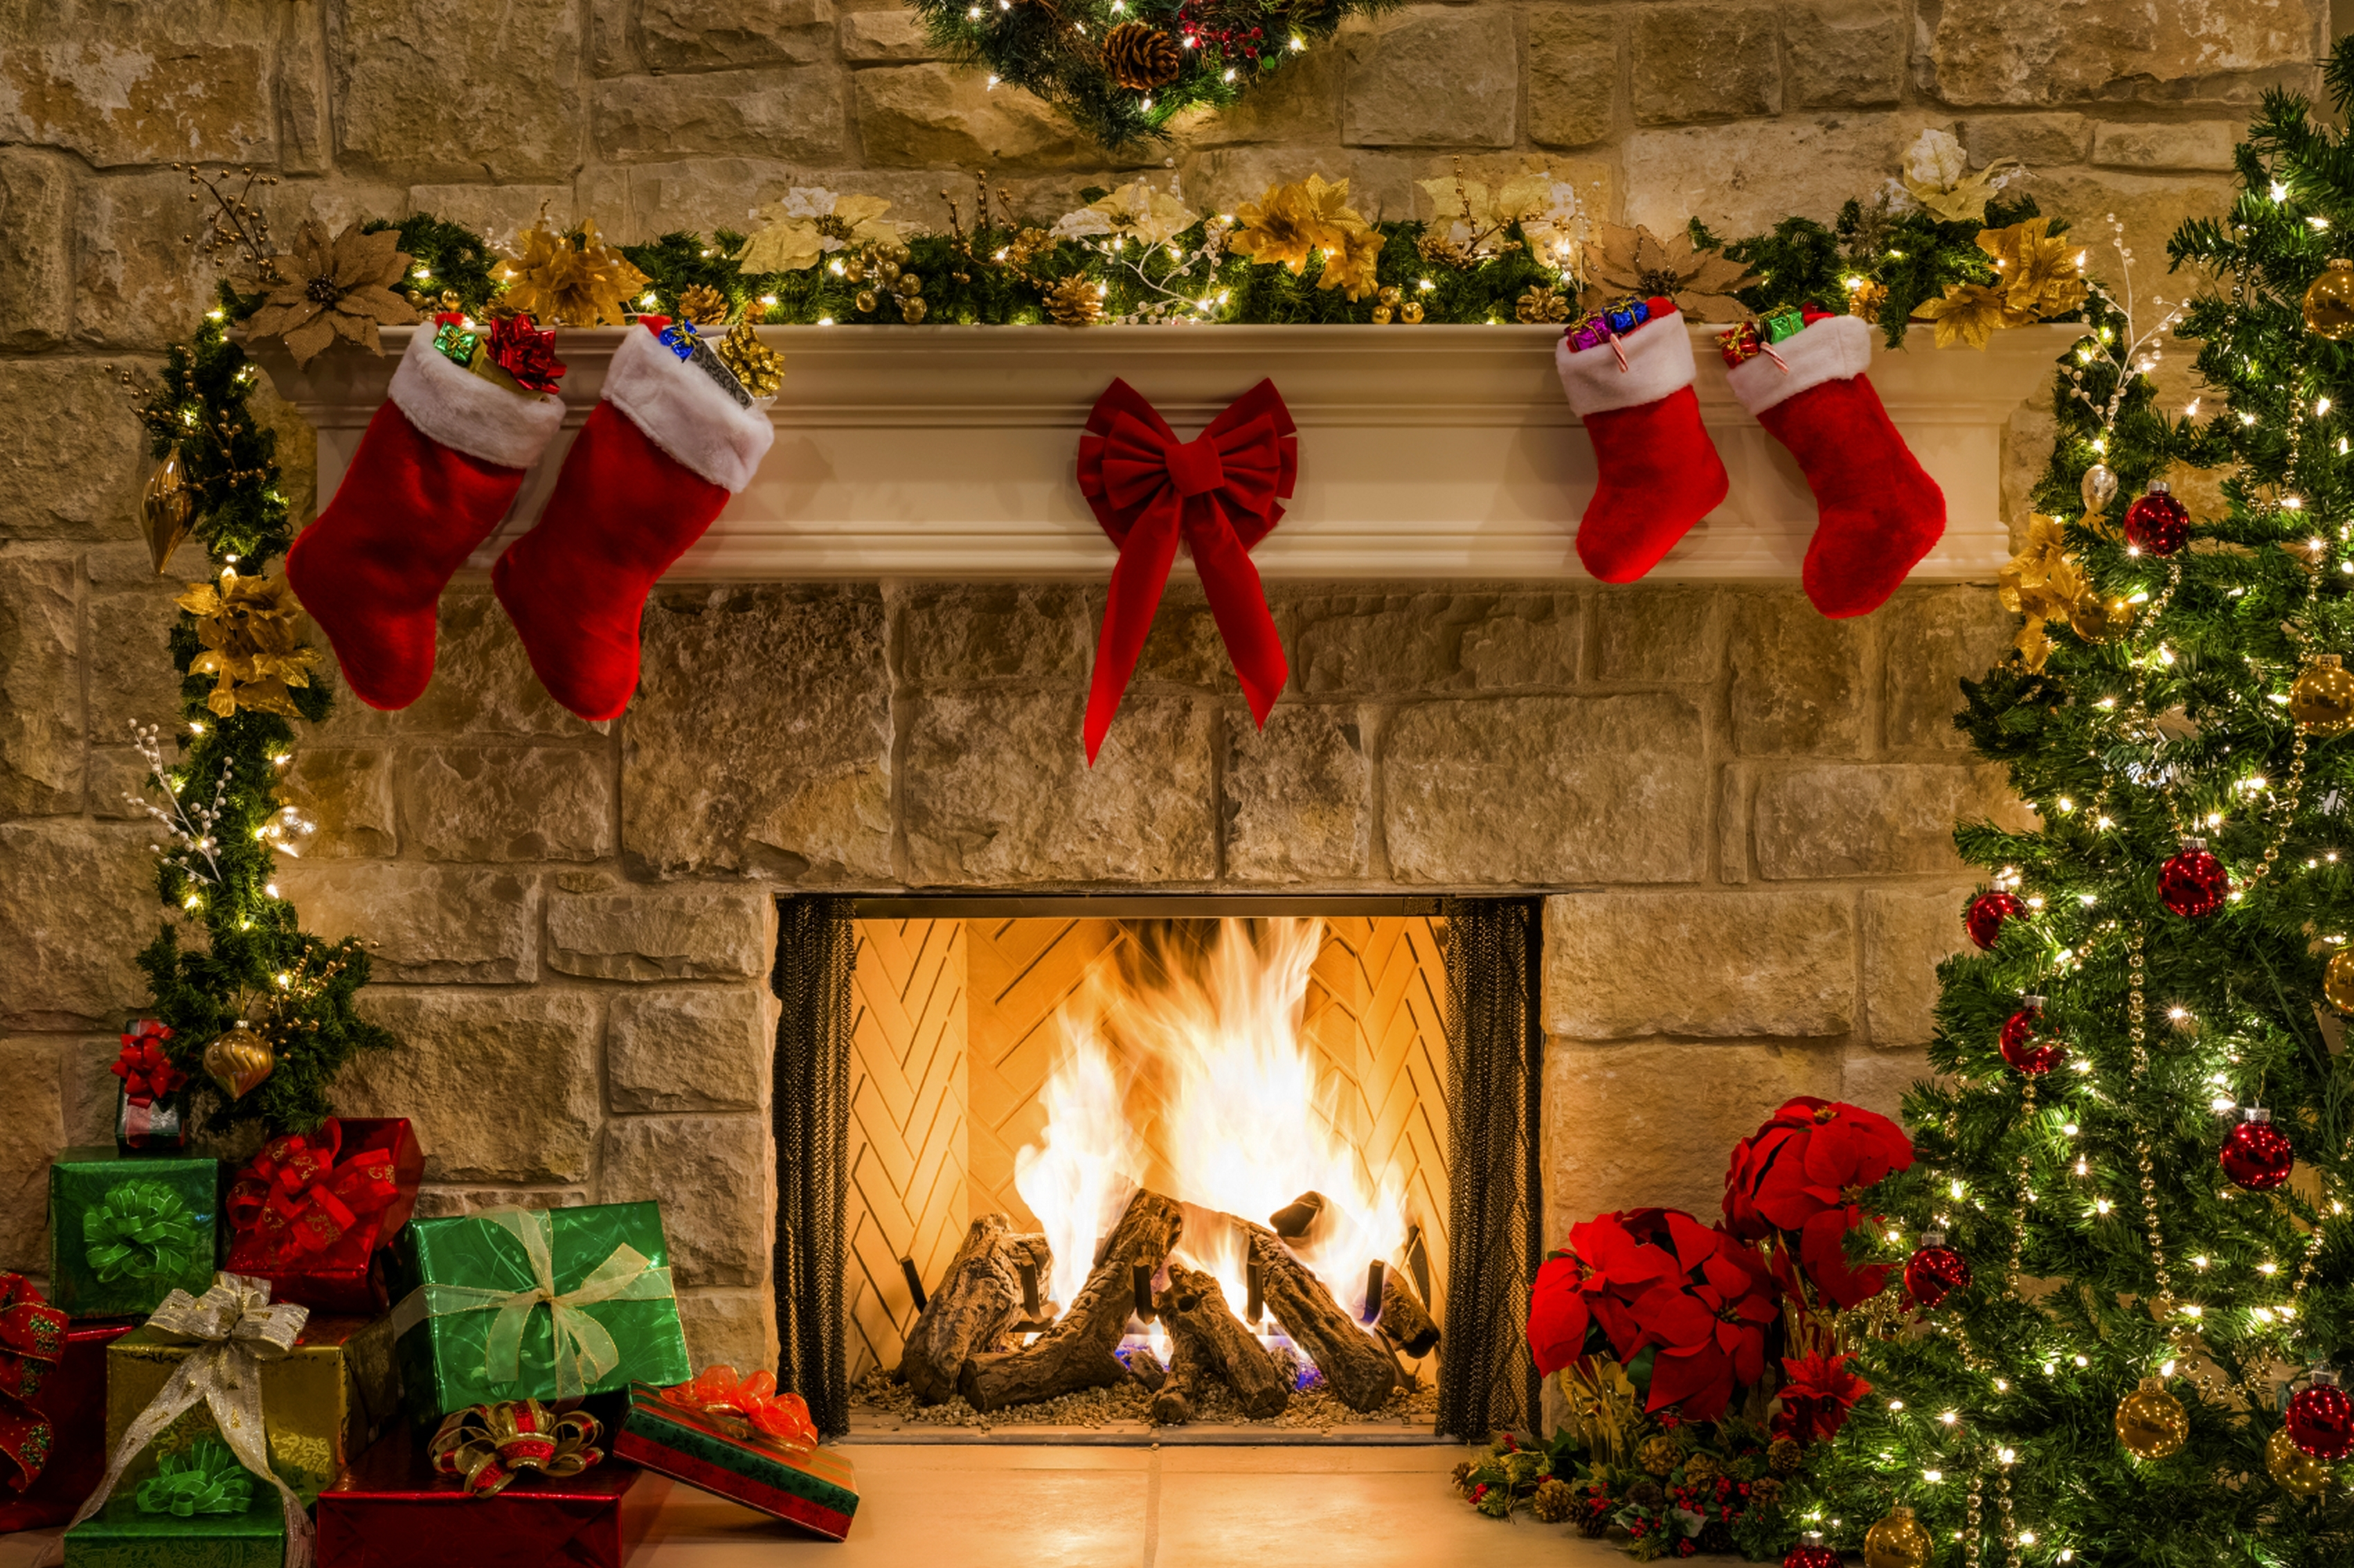 christmas happy new year boxes gifts holiday fireplace wallpapers 3400x2265